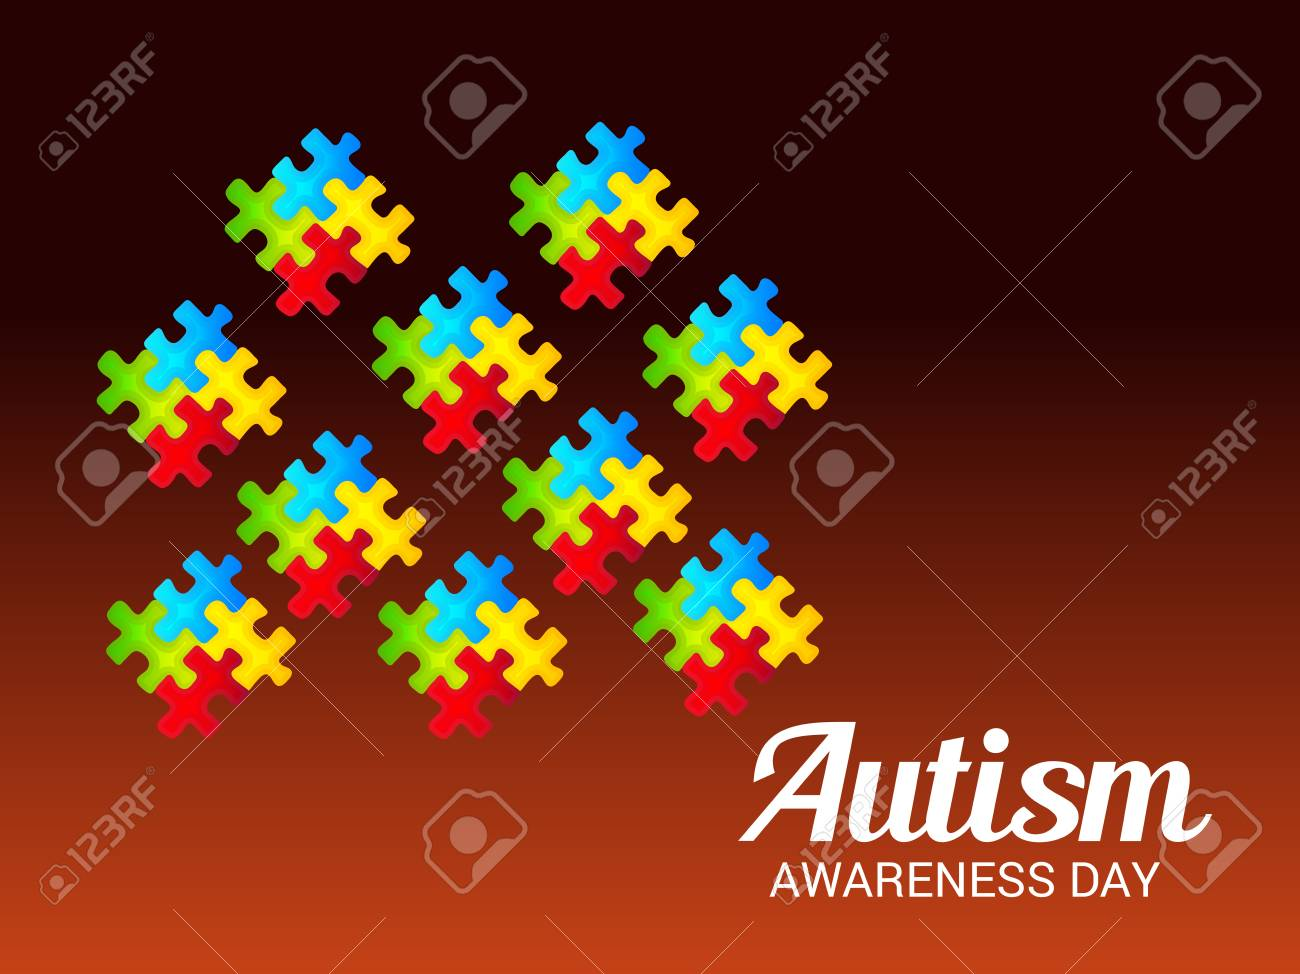 world autism awareness day banner with jigsaw pieces on dark